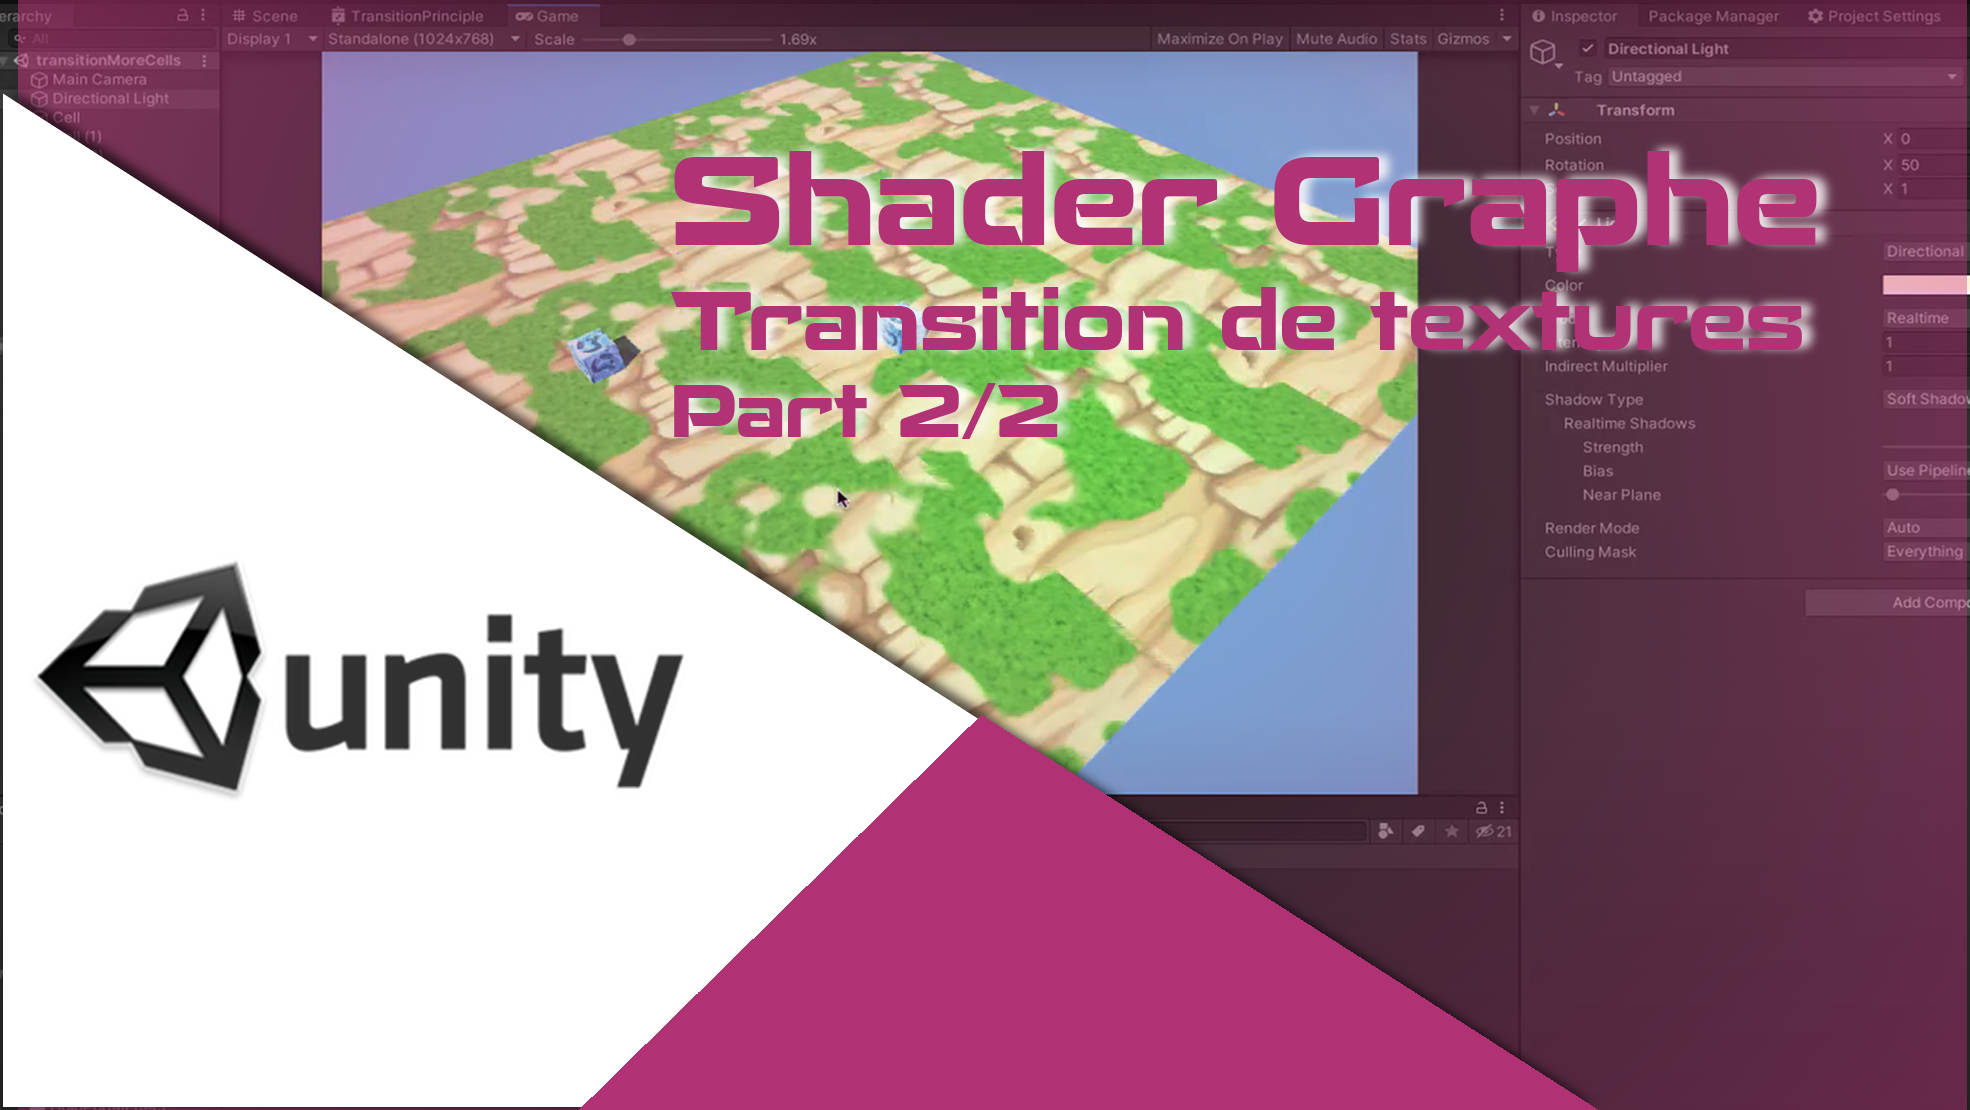 Transition de texture avec le Shader Graphe de Unity - part2